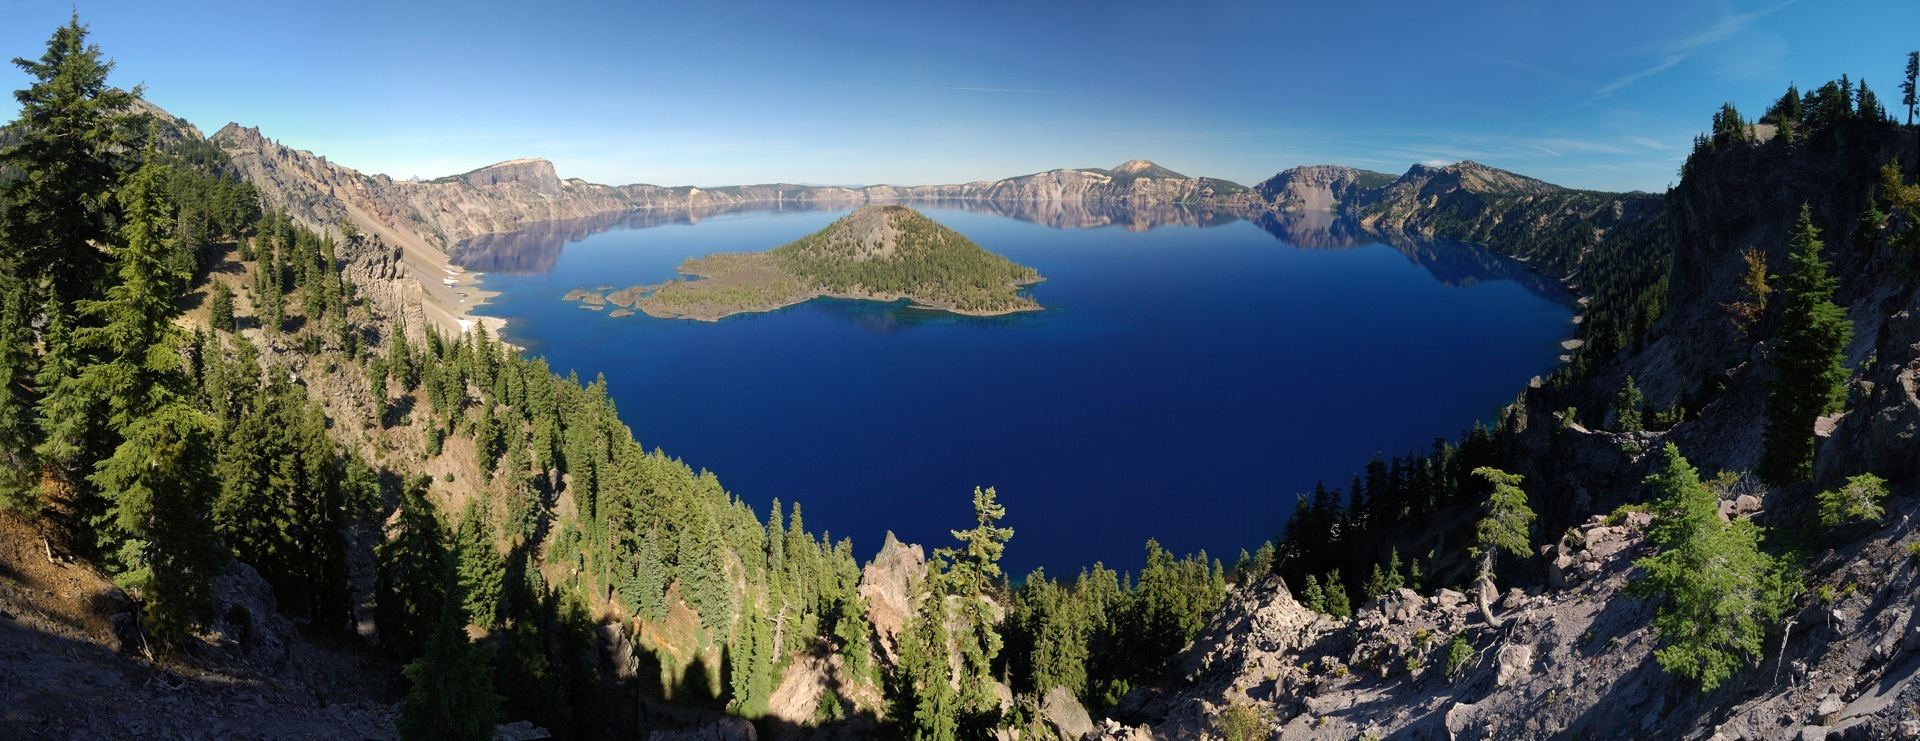 302152-crater-lake-national-park.jpg